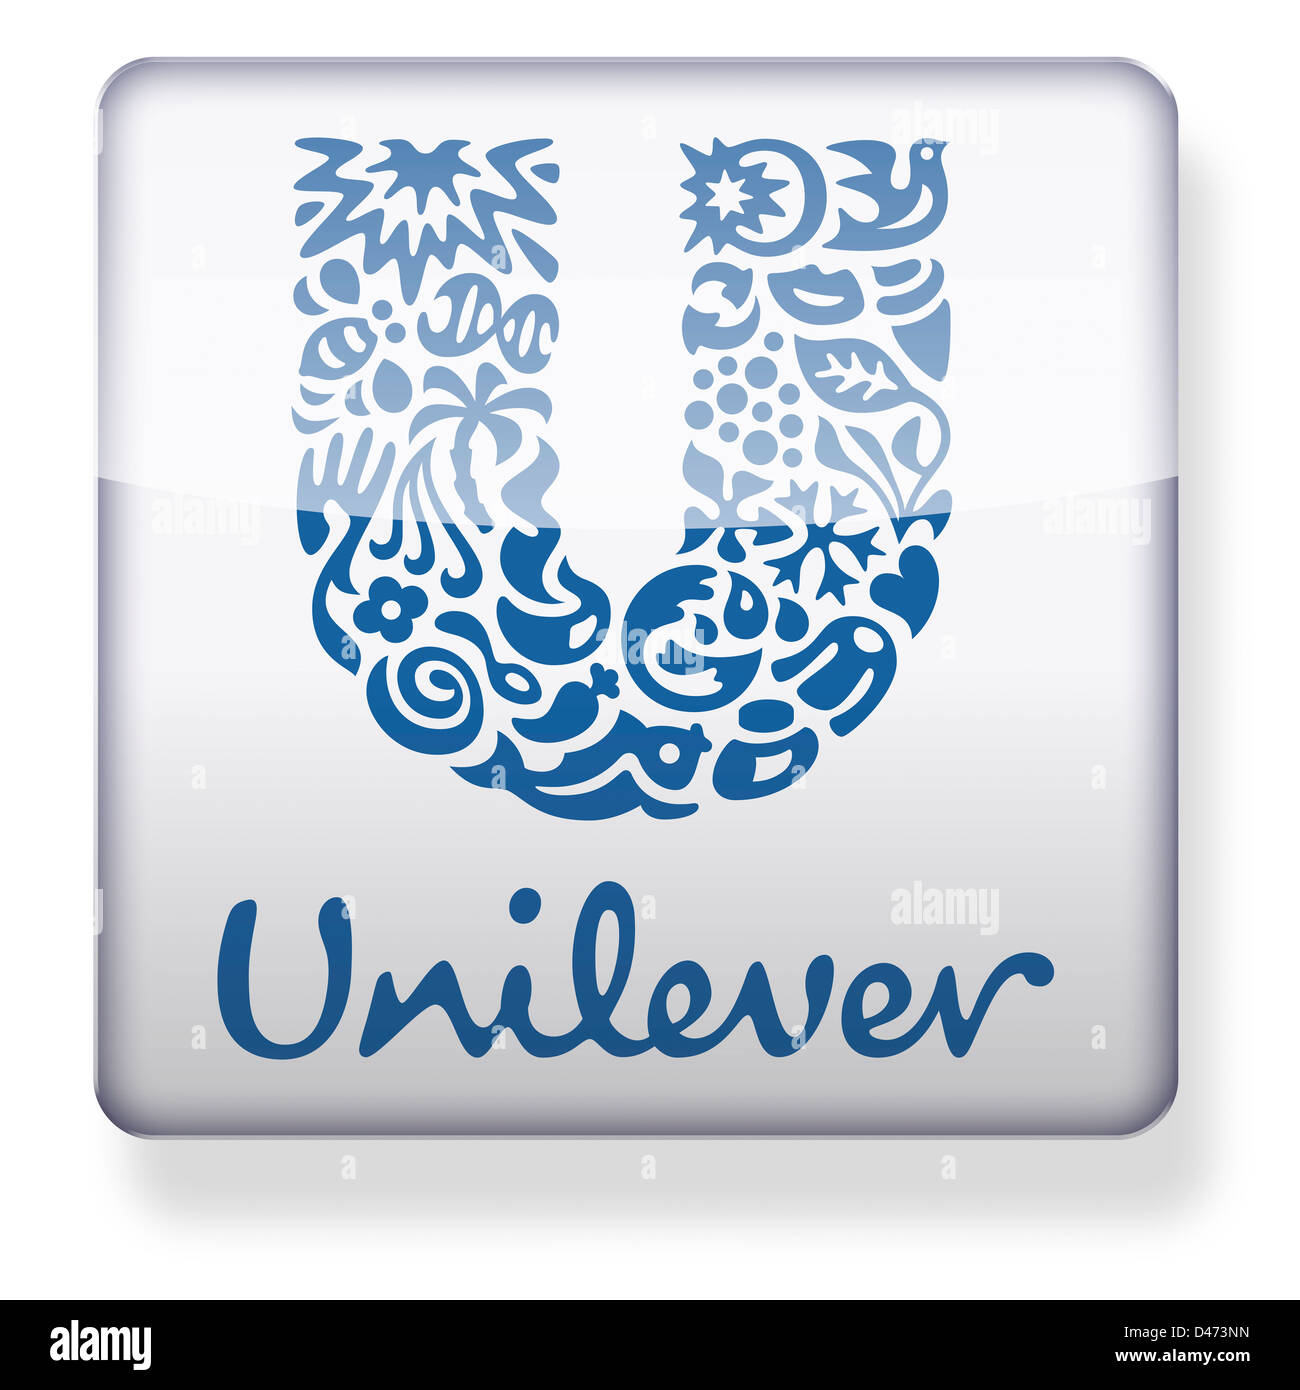 Unilever logo as an app icon. Clipping path included. Stock Photo